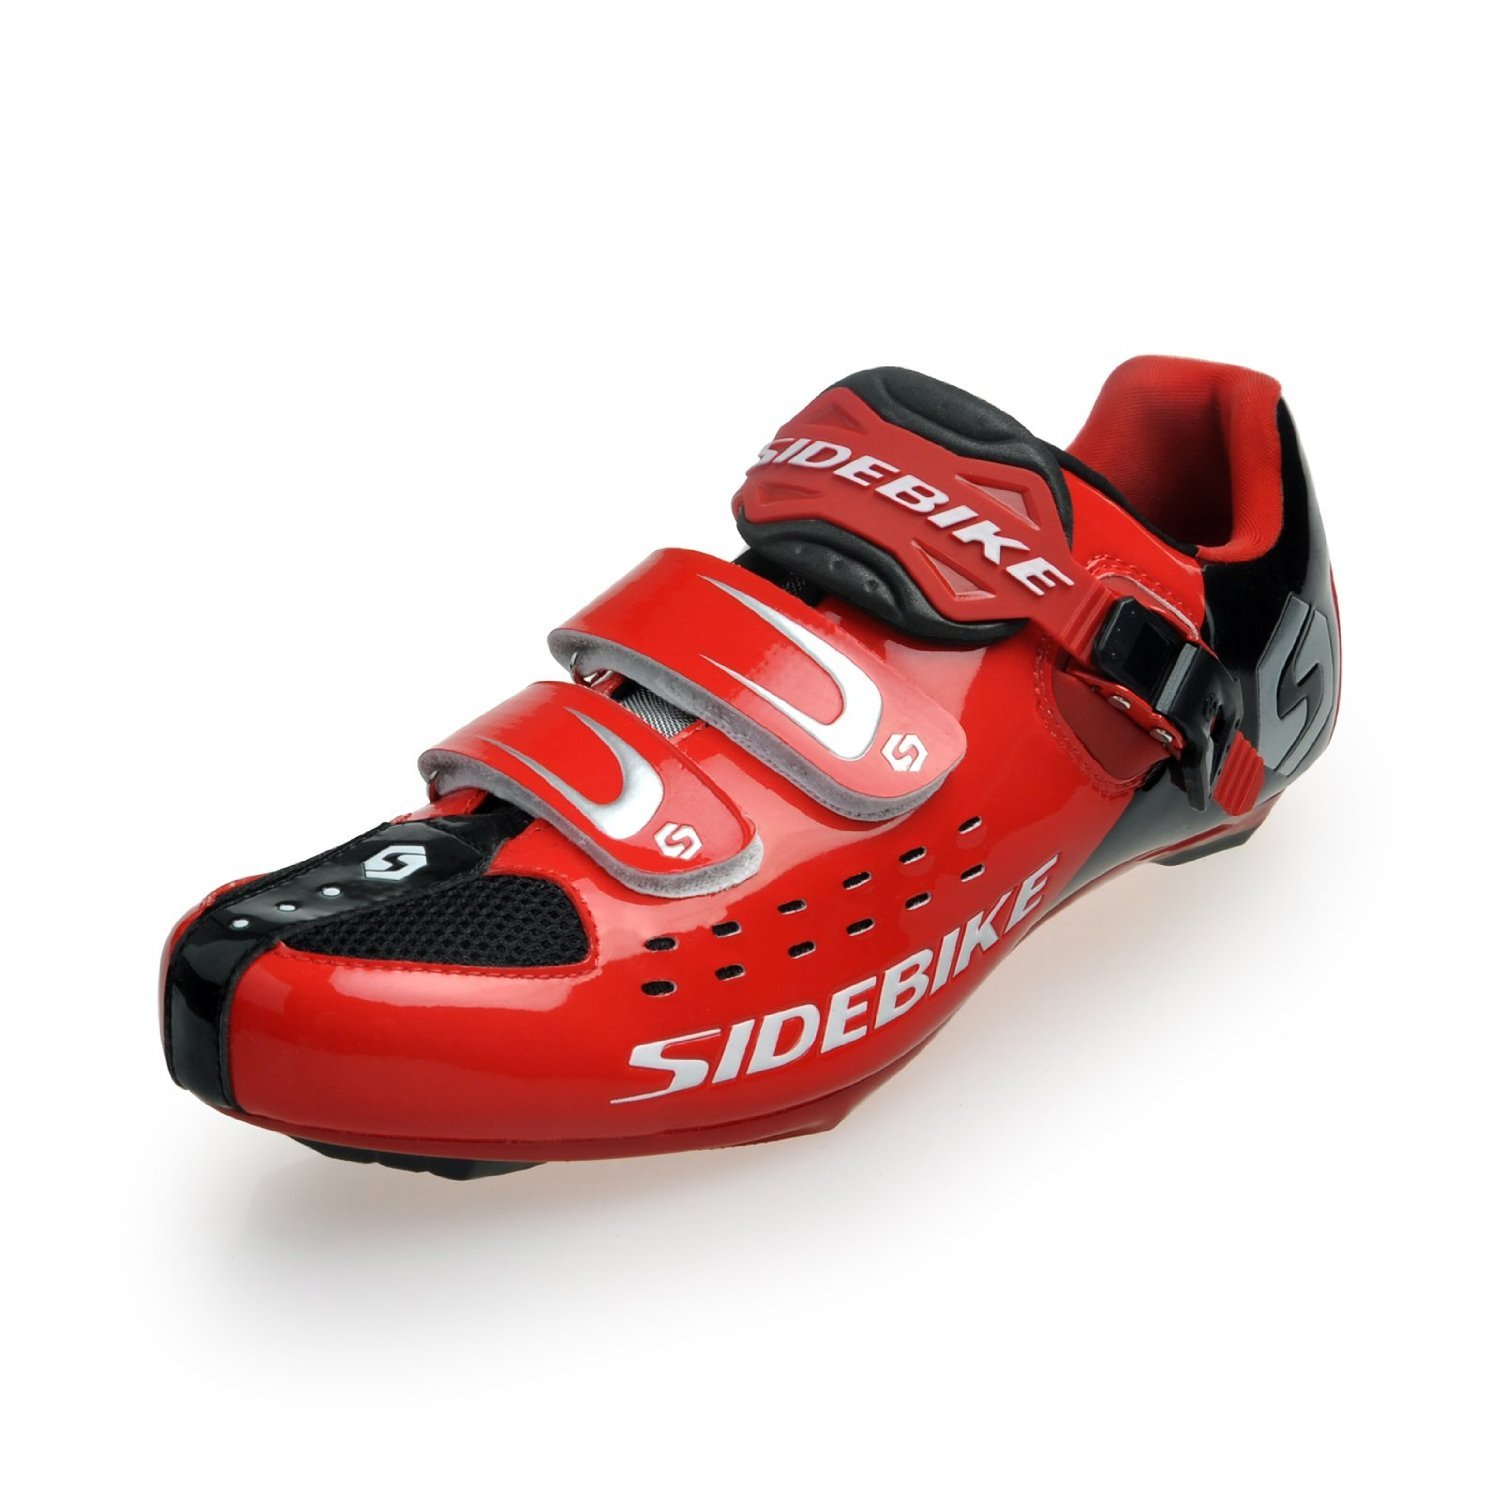 Sidebike Adult's S01 MTB or Road Synthetic Cycling Shoe B014W8QUOU 10 M US|Road-Red